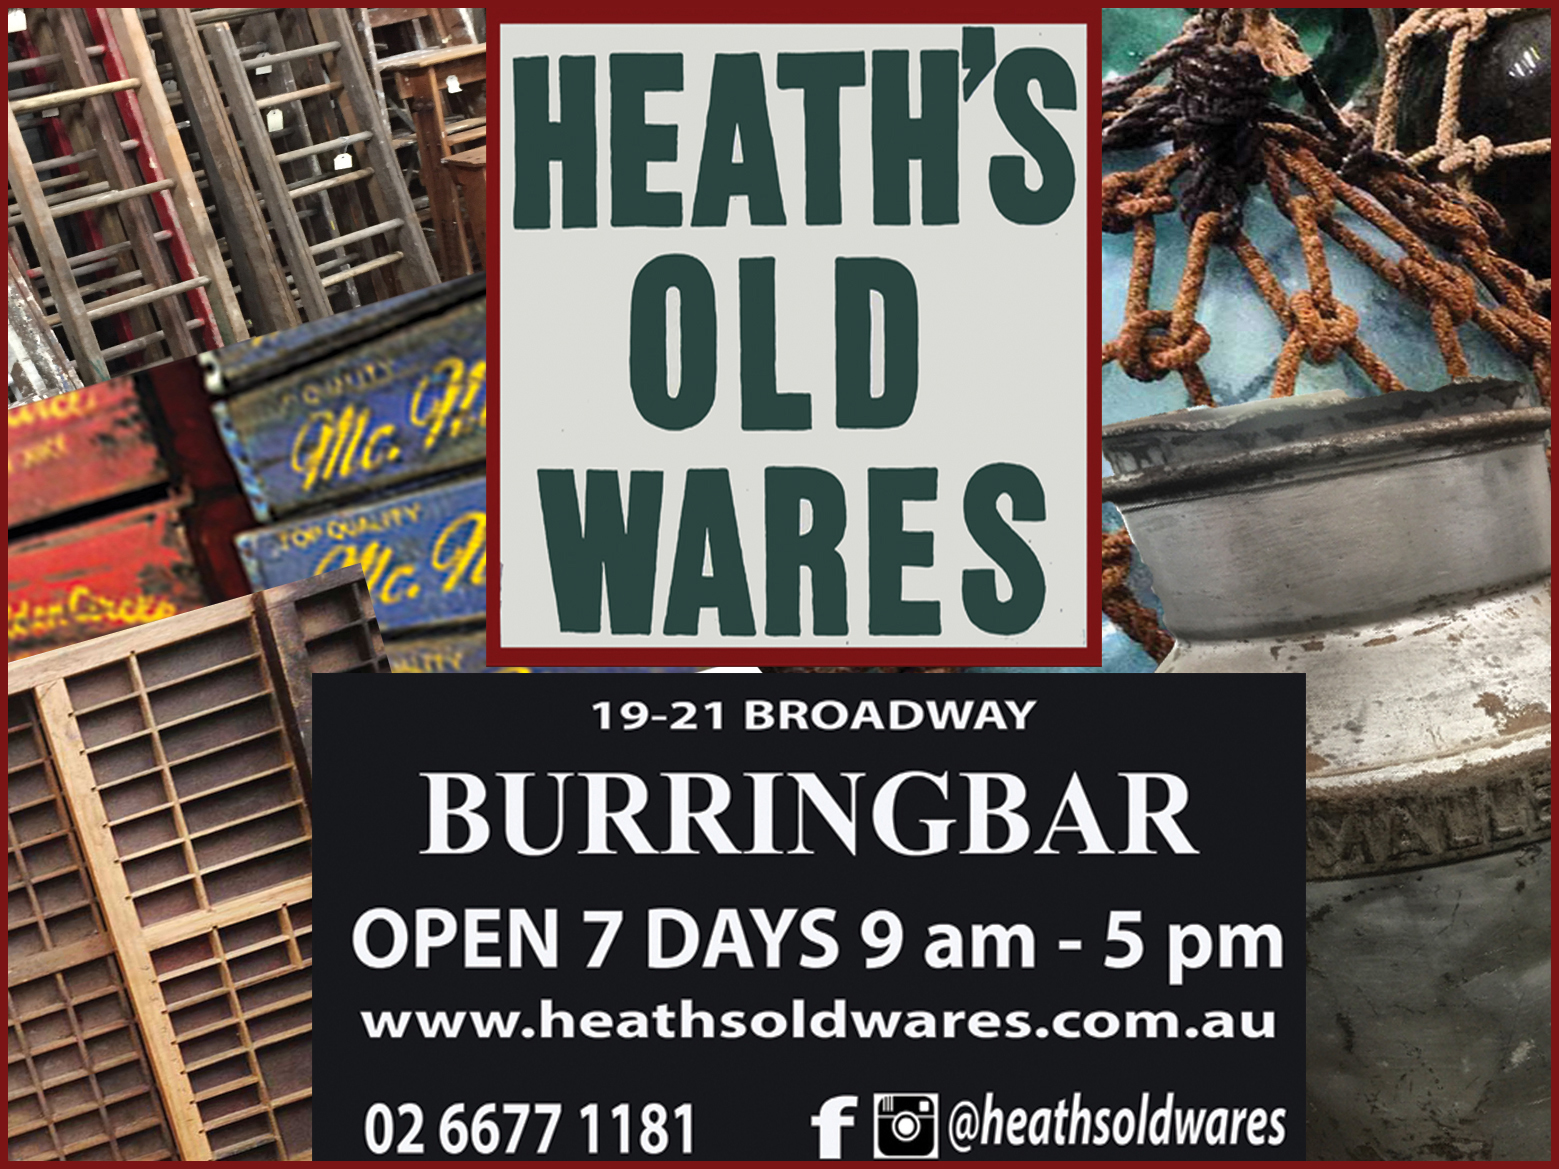 Heaths Old Wares and Collectables Burringbar